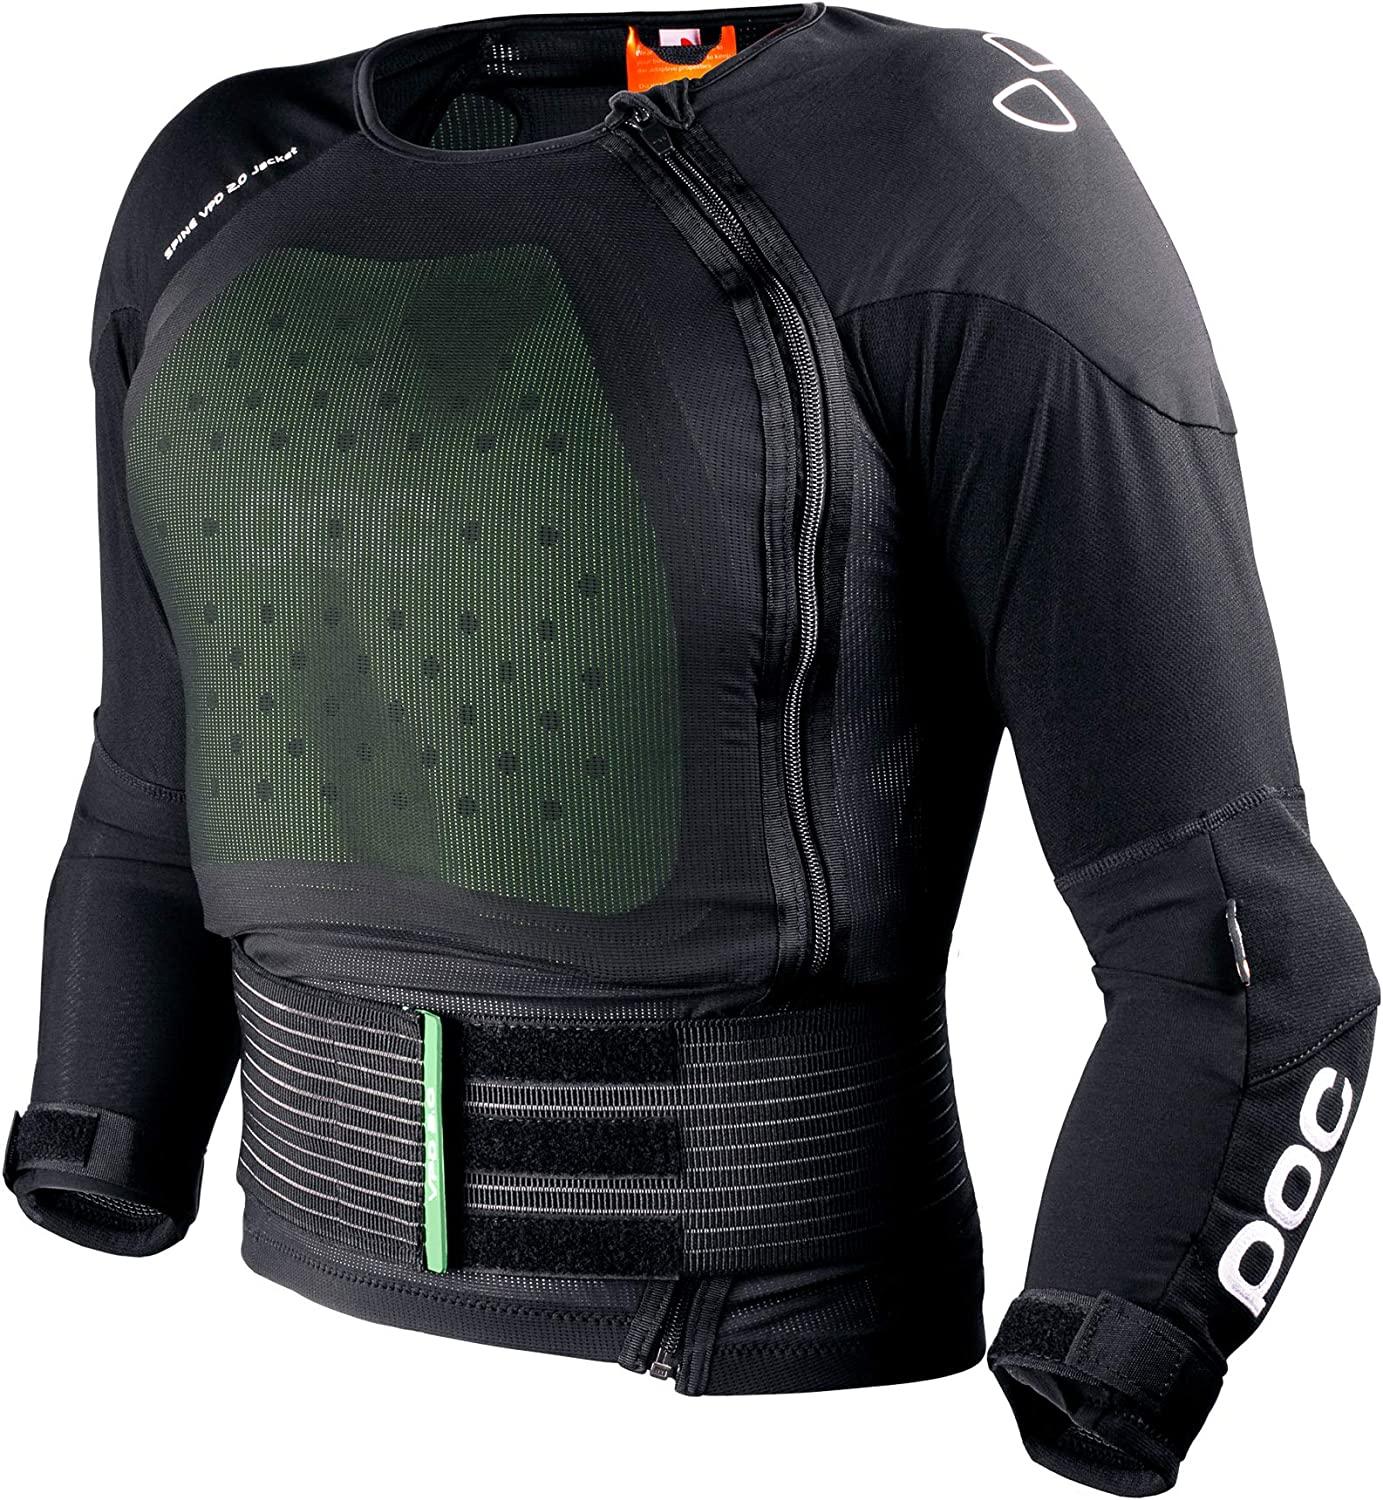 Image of POC Spine VPD 2.0 Jacket Body Armor